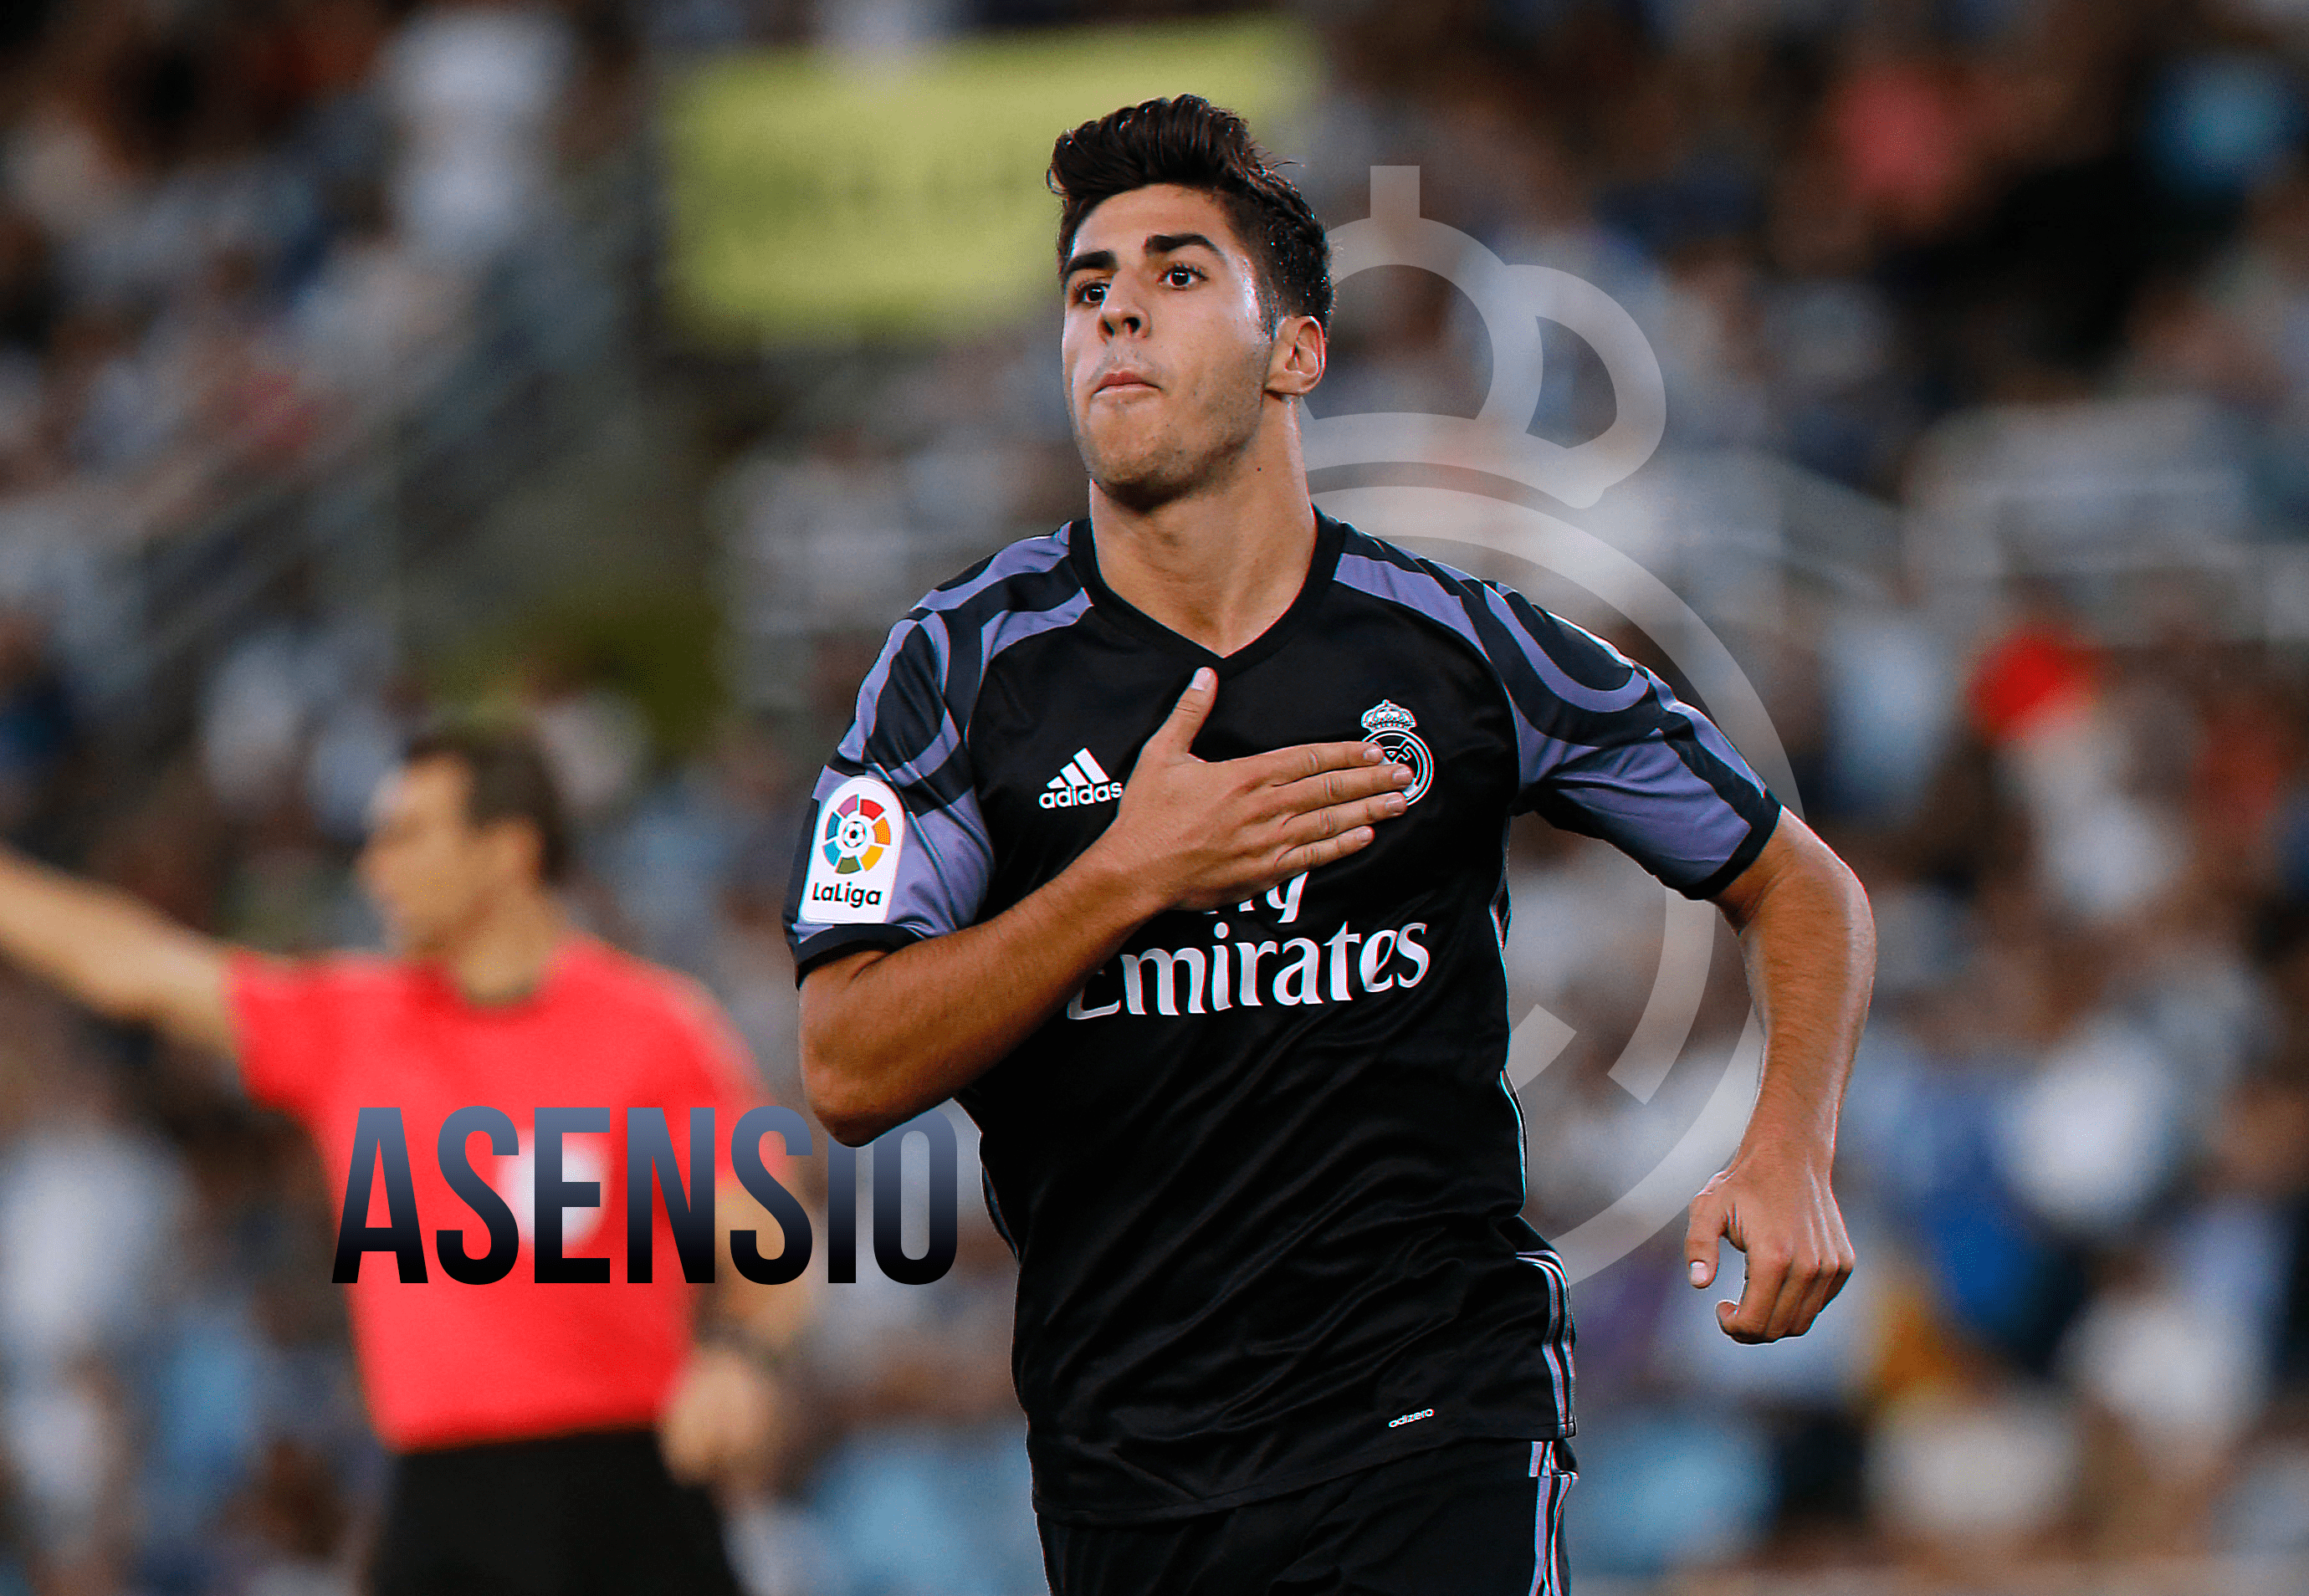 Marco Asensio widescreen wallpapers